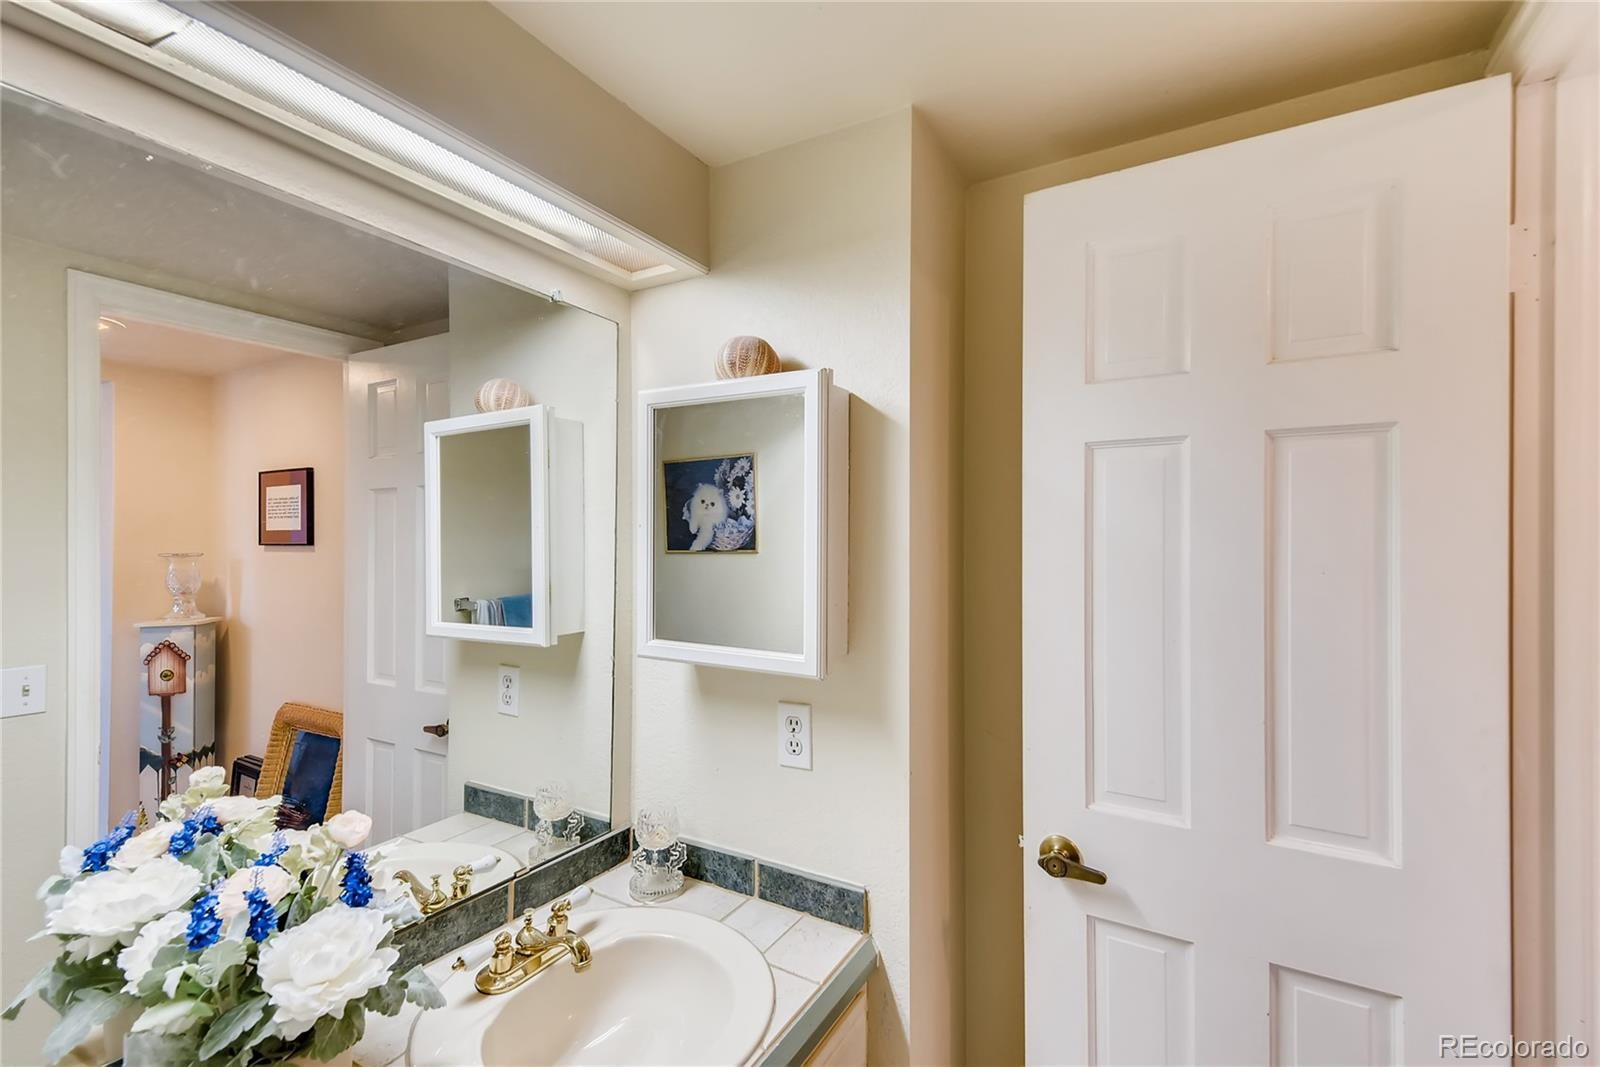 MLS# 6910180 - 9 - 2336 Ranch Drive, Westminster, CO 80234